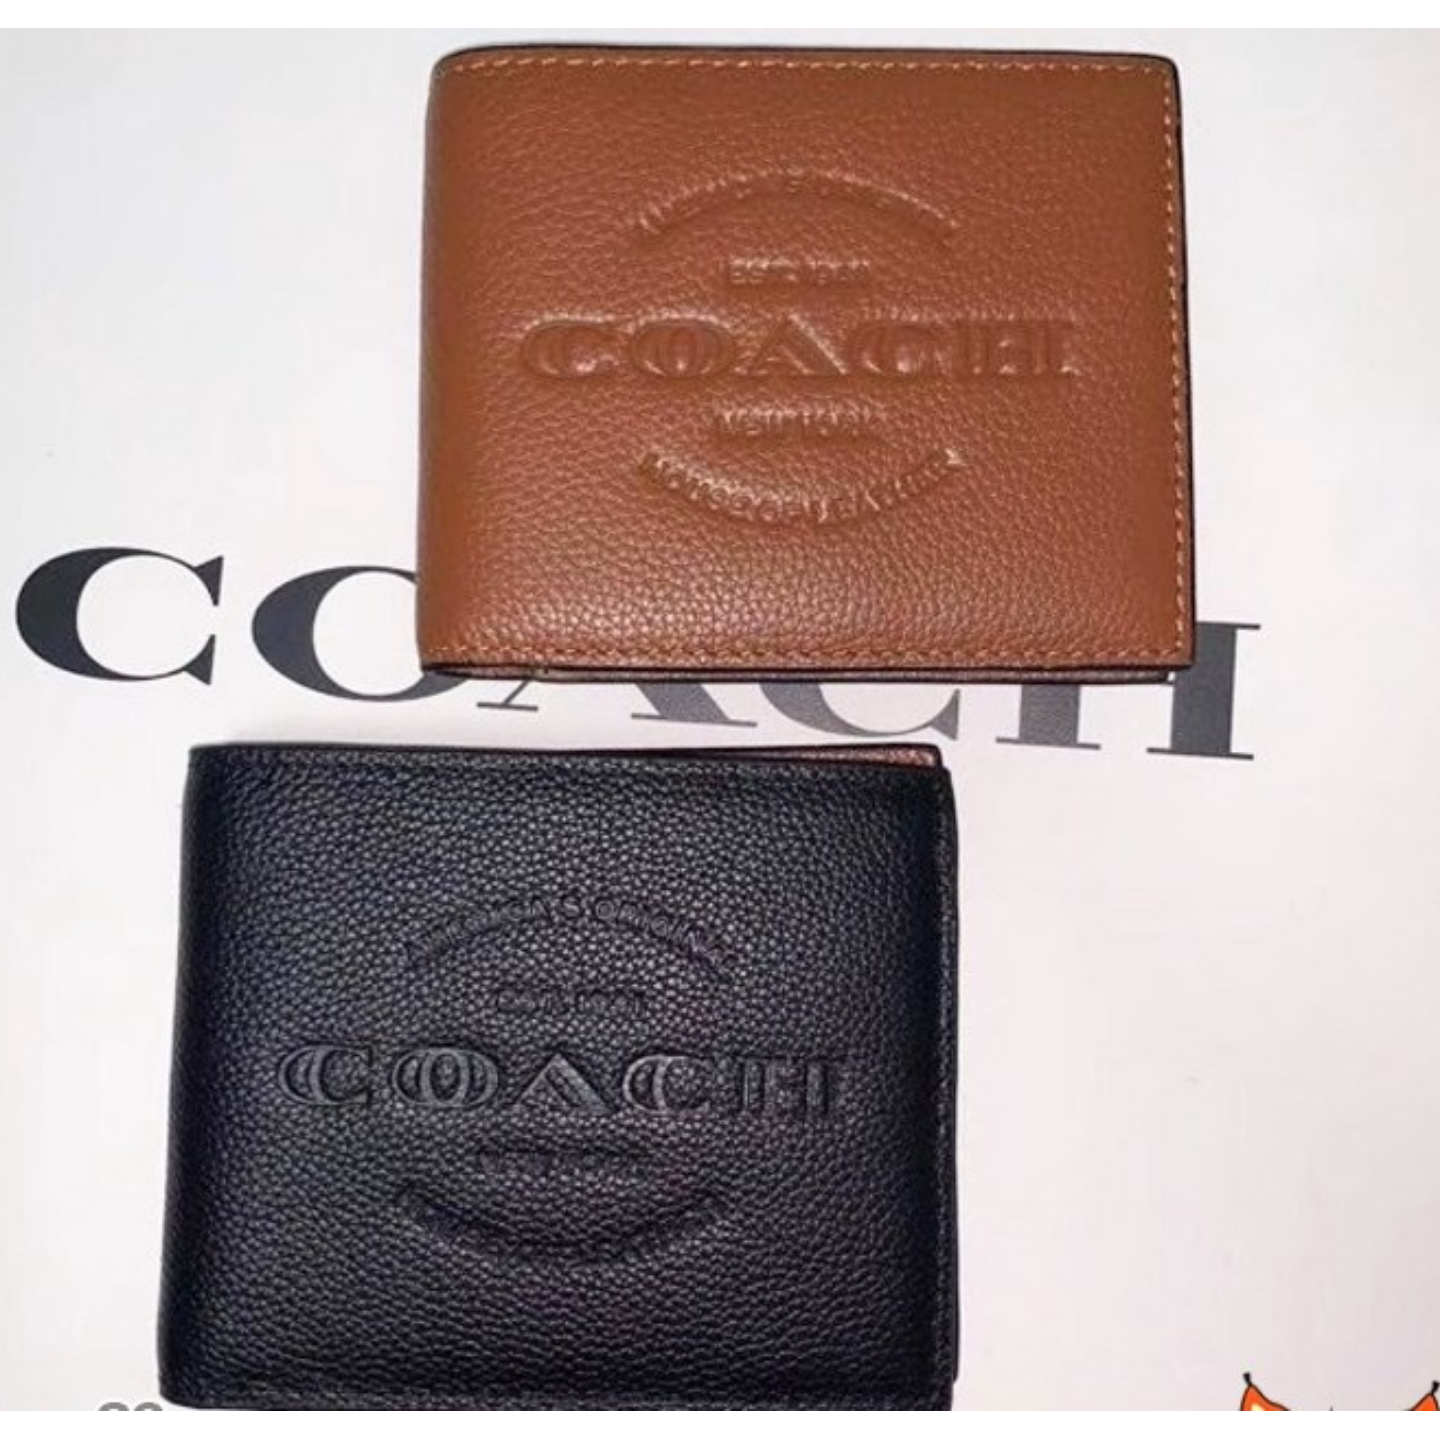 (SG COD) Men's  Coach wallet F24647 wallet and cardholder short wallet